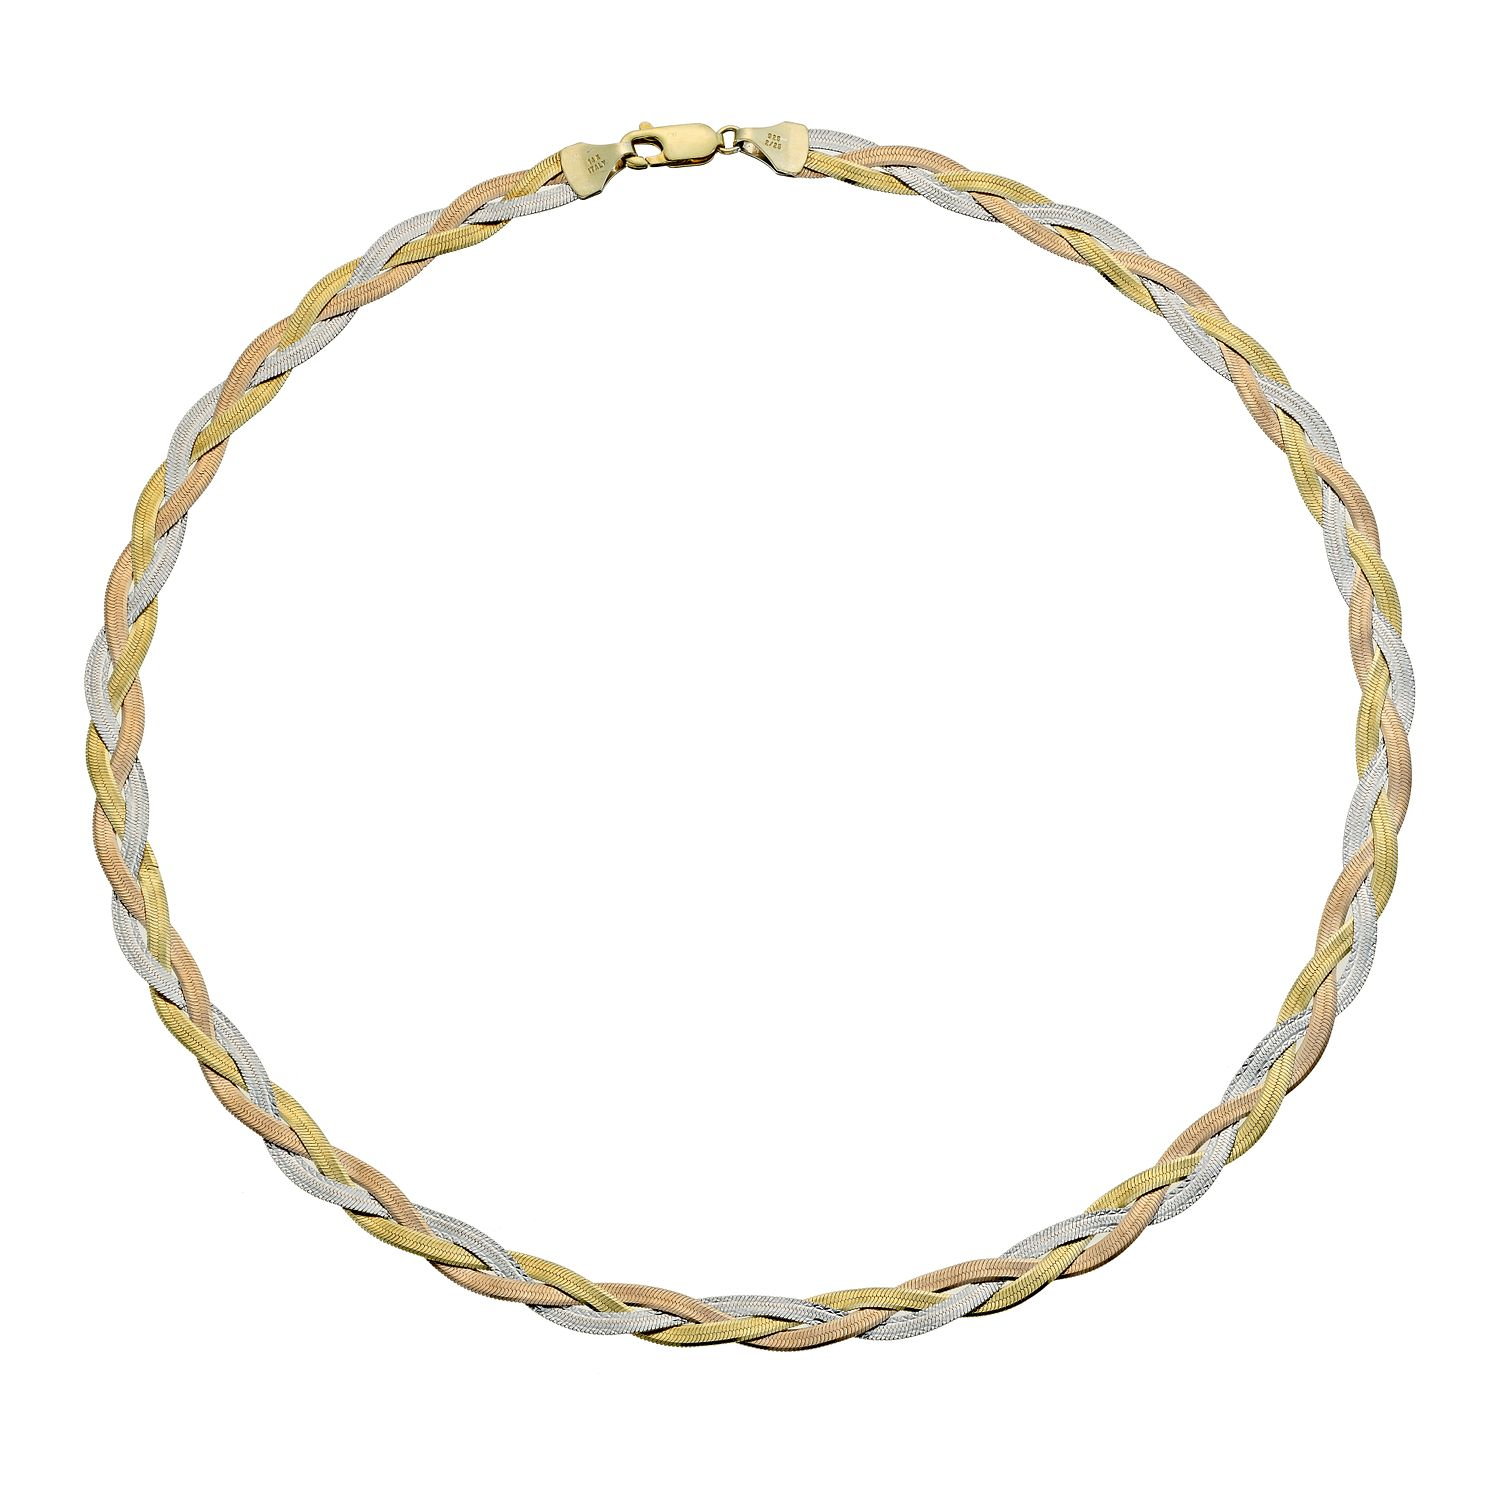 Together Silver & Bonded Gold Herringbone 17 inches Necklace - Product number 9690298